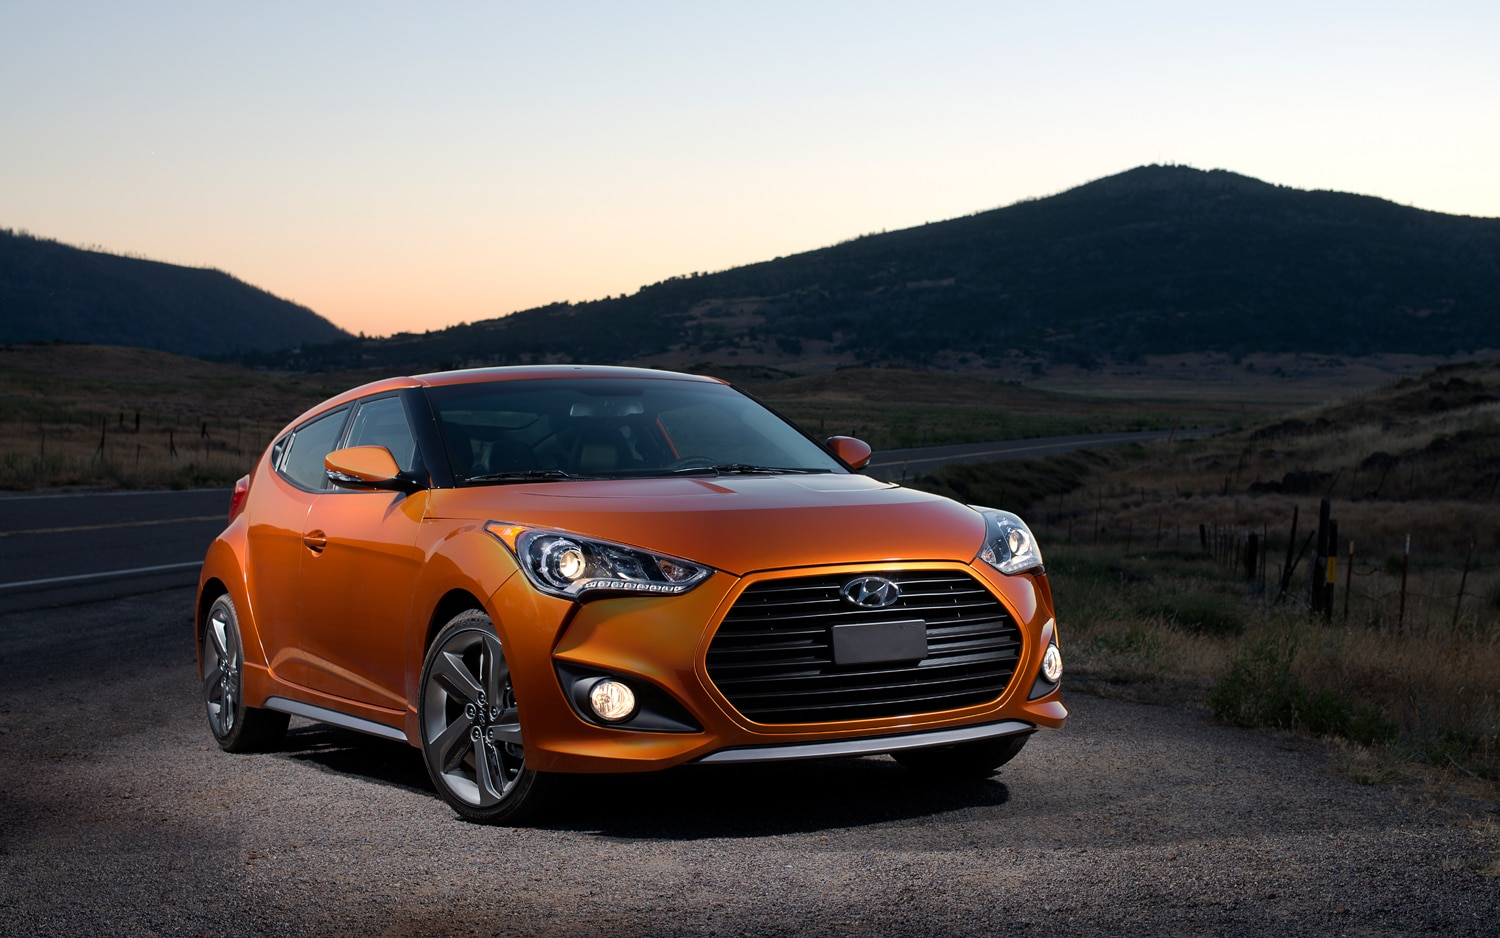 2013 Hyundai Veloster Turbo Front Right View1